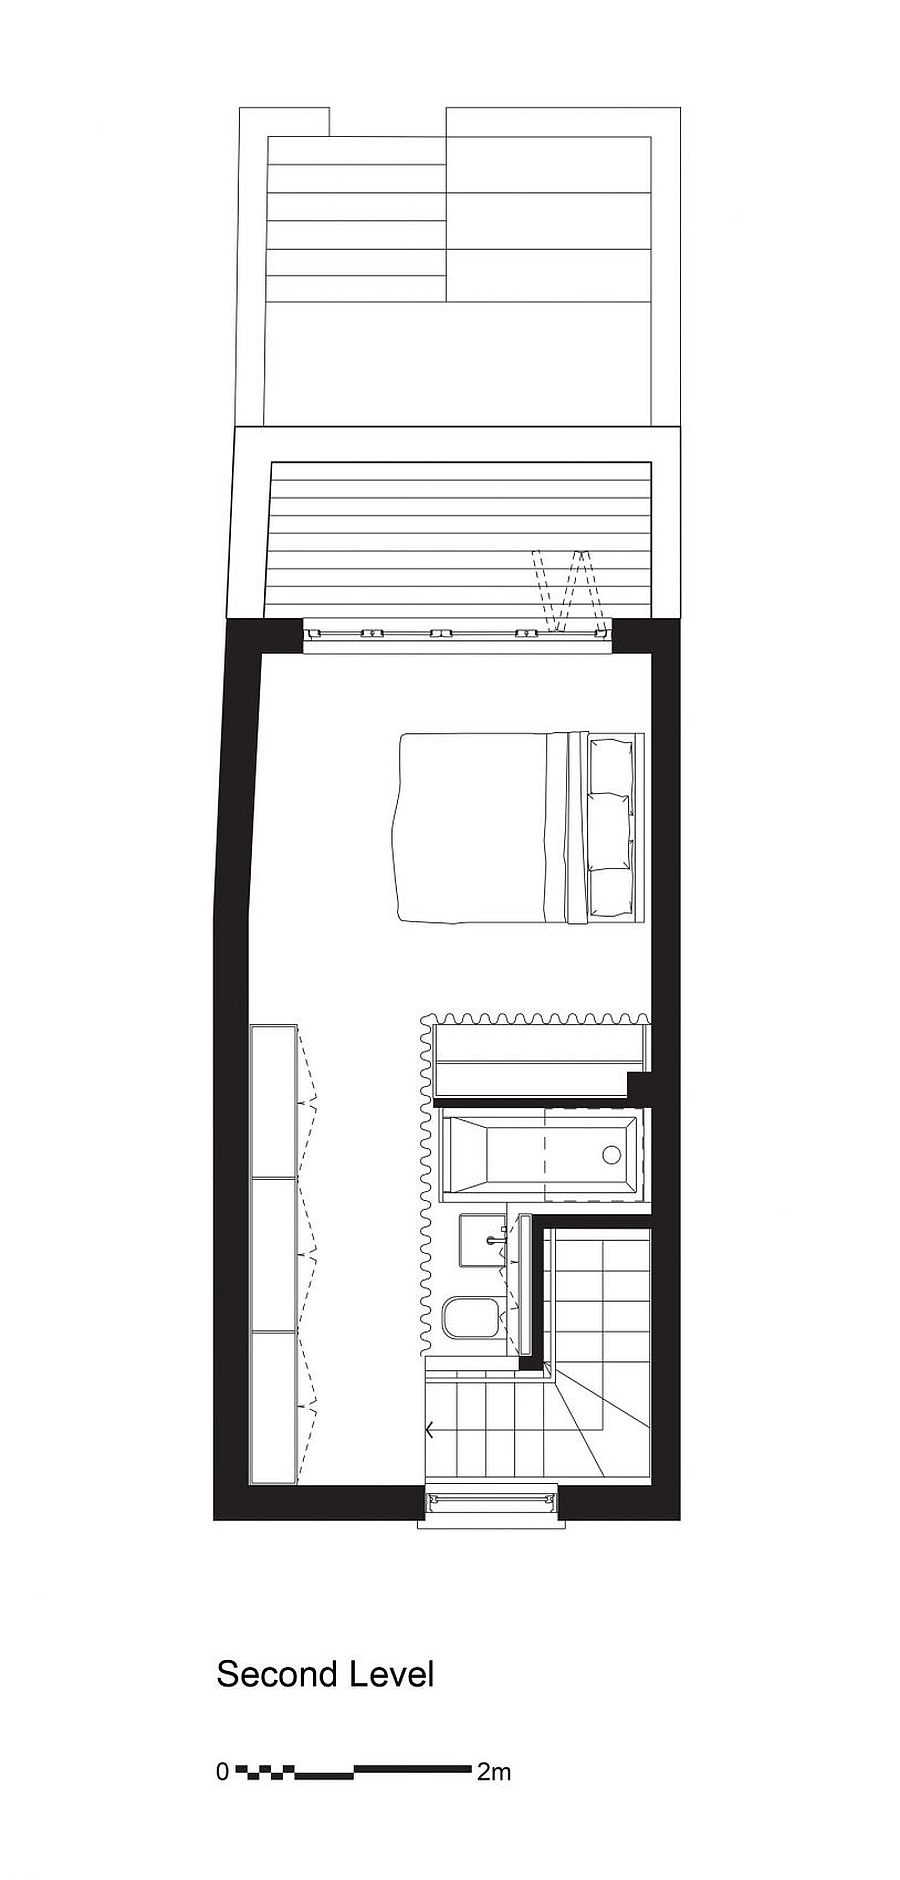 Top level floor plan with master bedroom and balcony